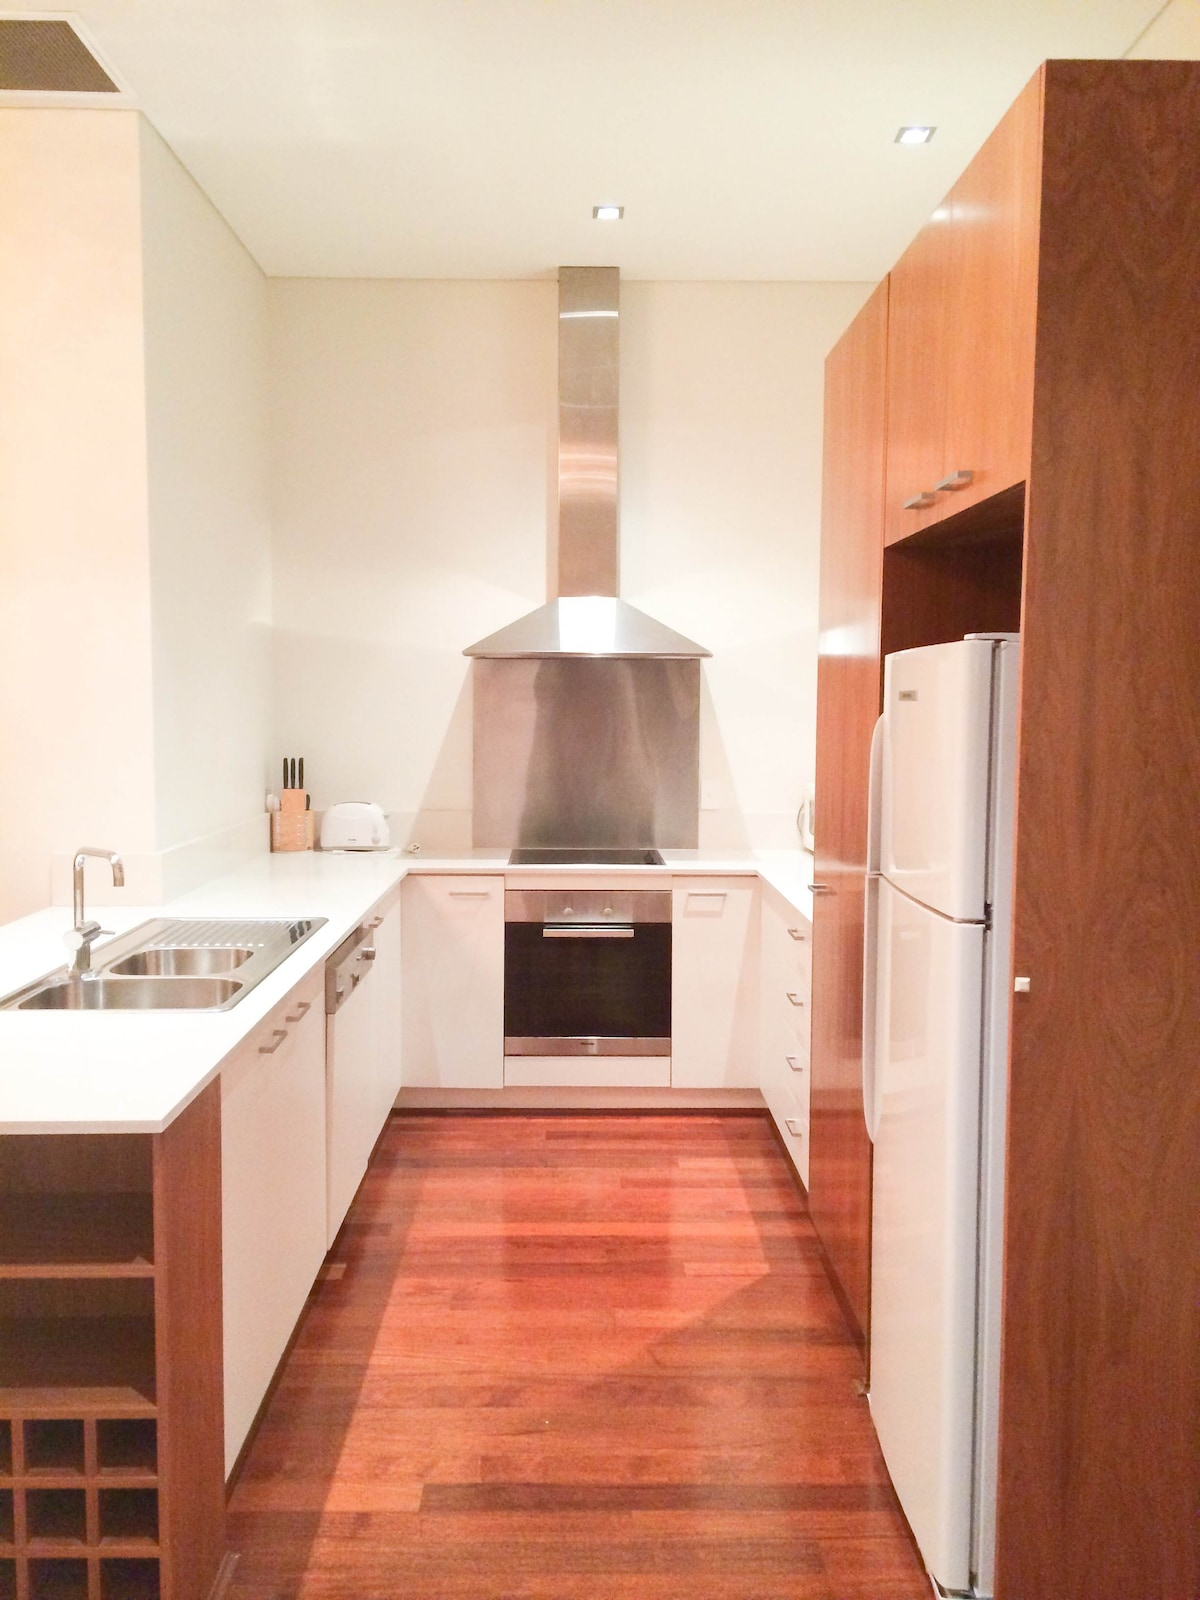 Well appointed kitchen with Miele Appliances and fully equipped, just like being at home.